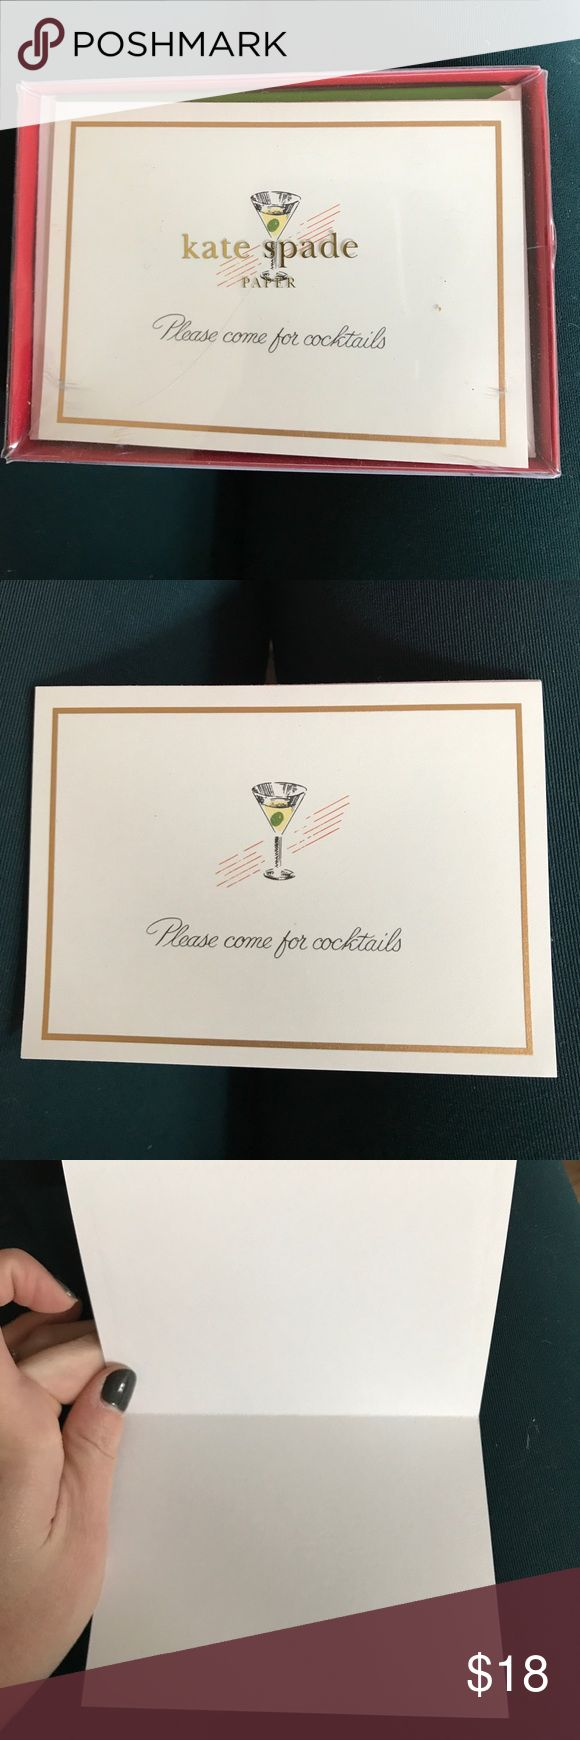 """Kate Spade invites Brand new with tags Kate Spade invites with """"please come for cocktails"""" front and a green lined envelope.  10 cards and 10 envelopes with each pack. kate spade Other"""